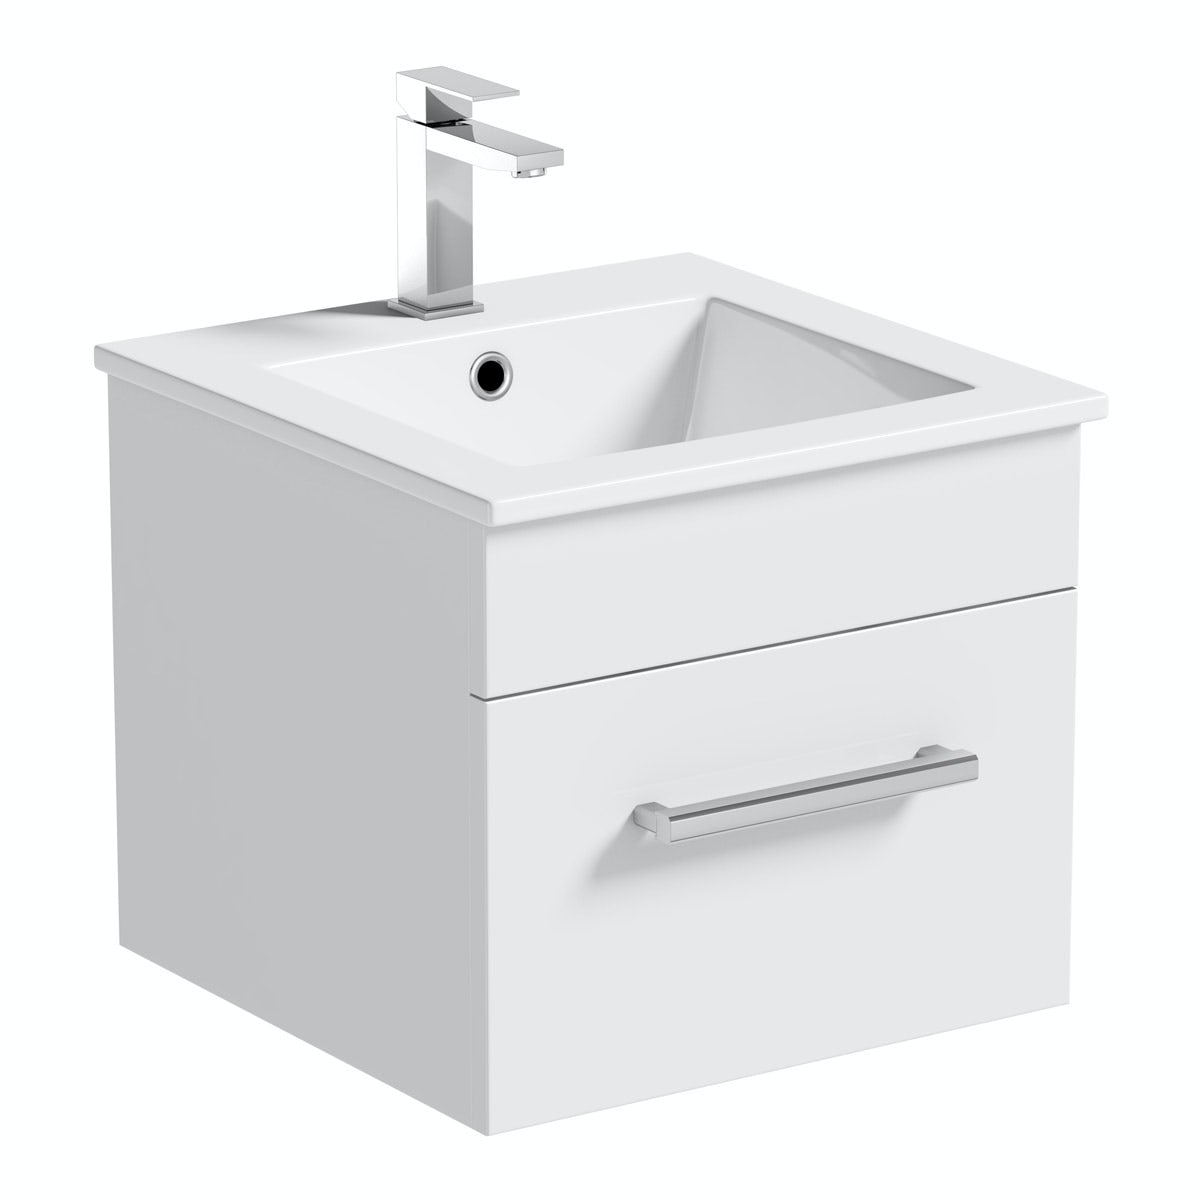 Orchard Derwent white wall hung cloakroom vanity unit